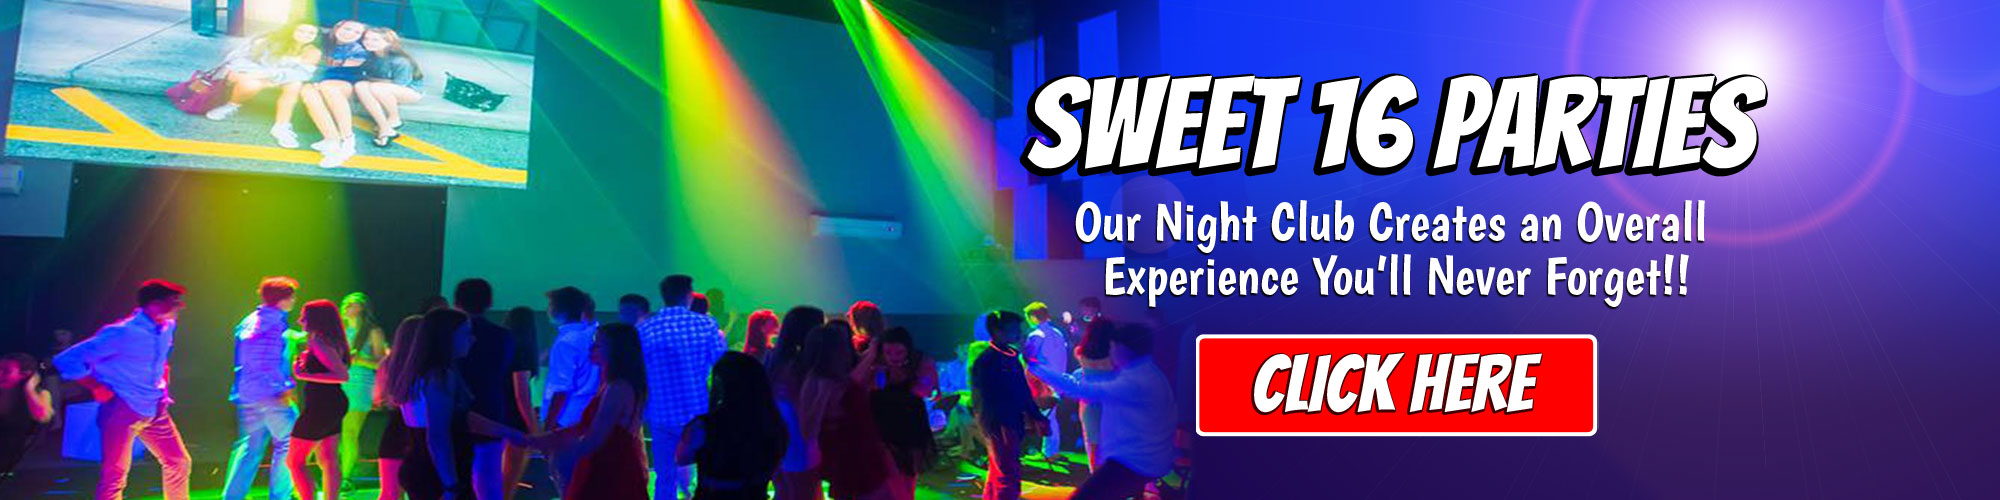 Sweet 16 Night Club Party